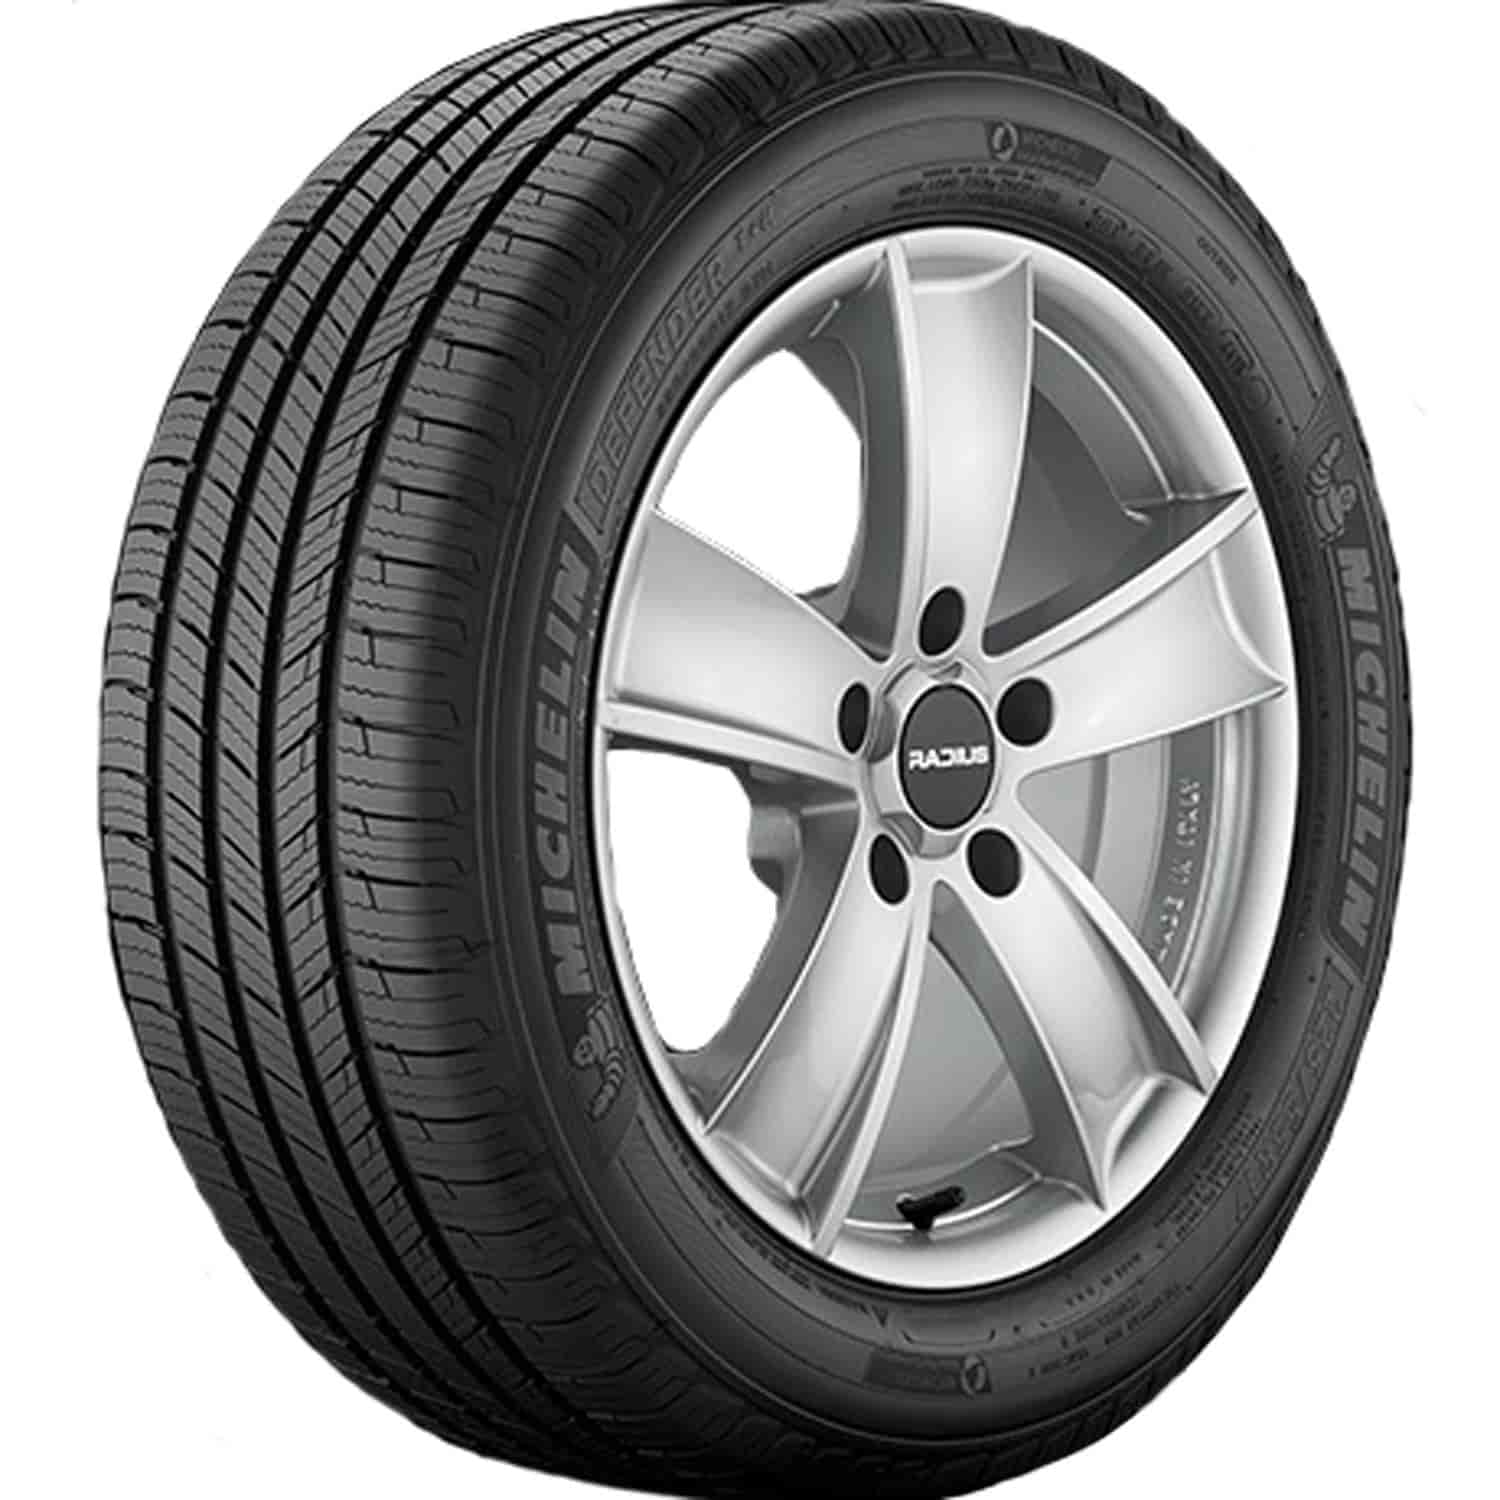 New Michelin Defender T H >> Michelin 32073: Defender T+H Tire Size:225/50R17 | JEGS